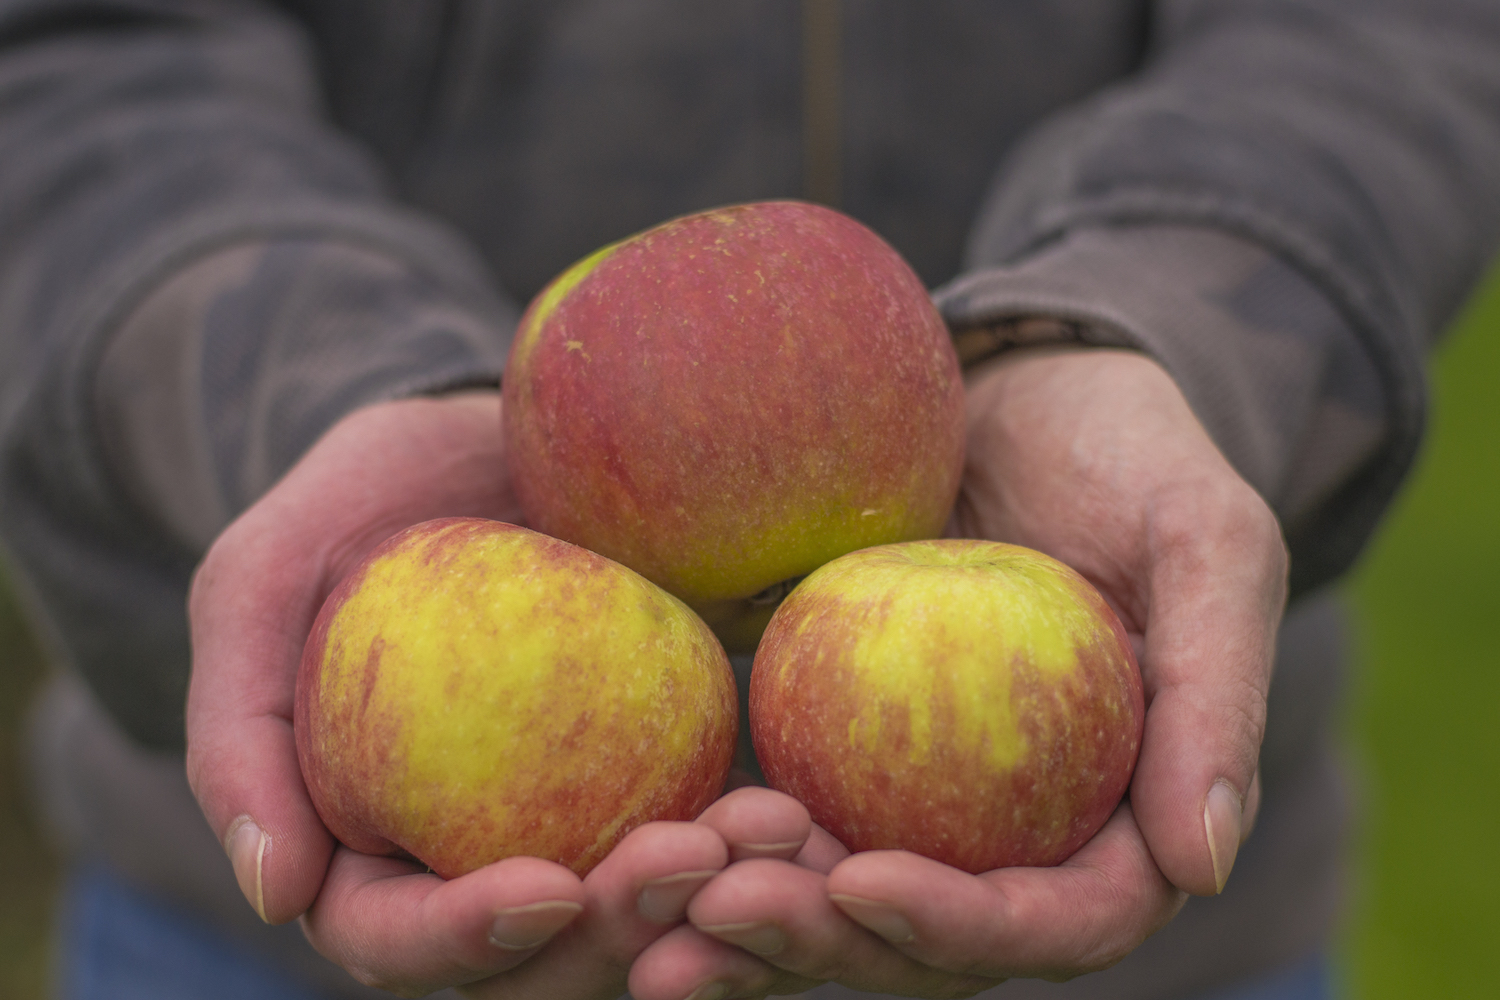 A view of freshly picked apples.